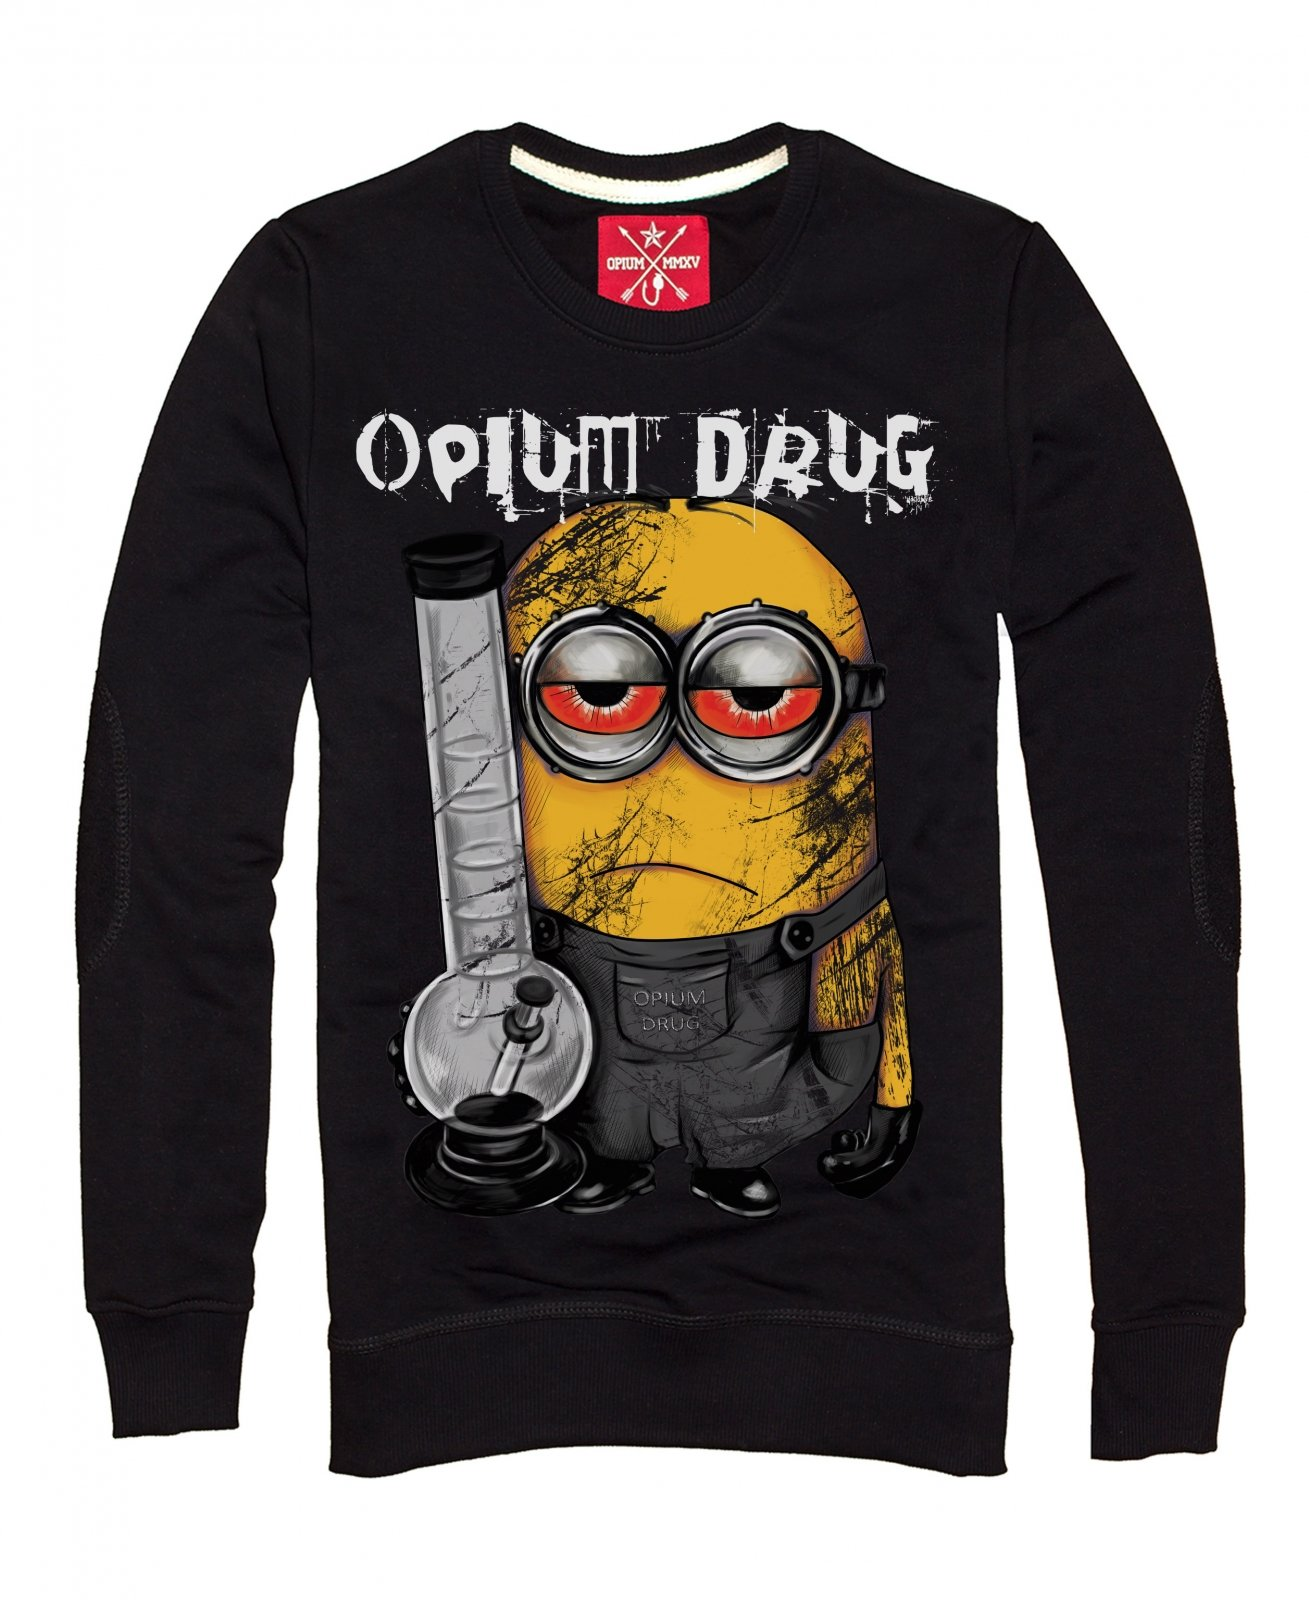 c51ccf5a3 Men's sweatshirt Minion | OPIUM — The press on t-shirts Kiev